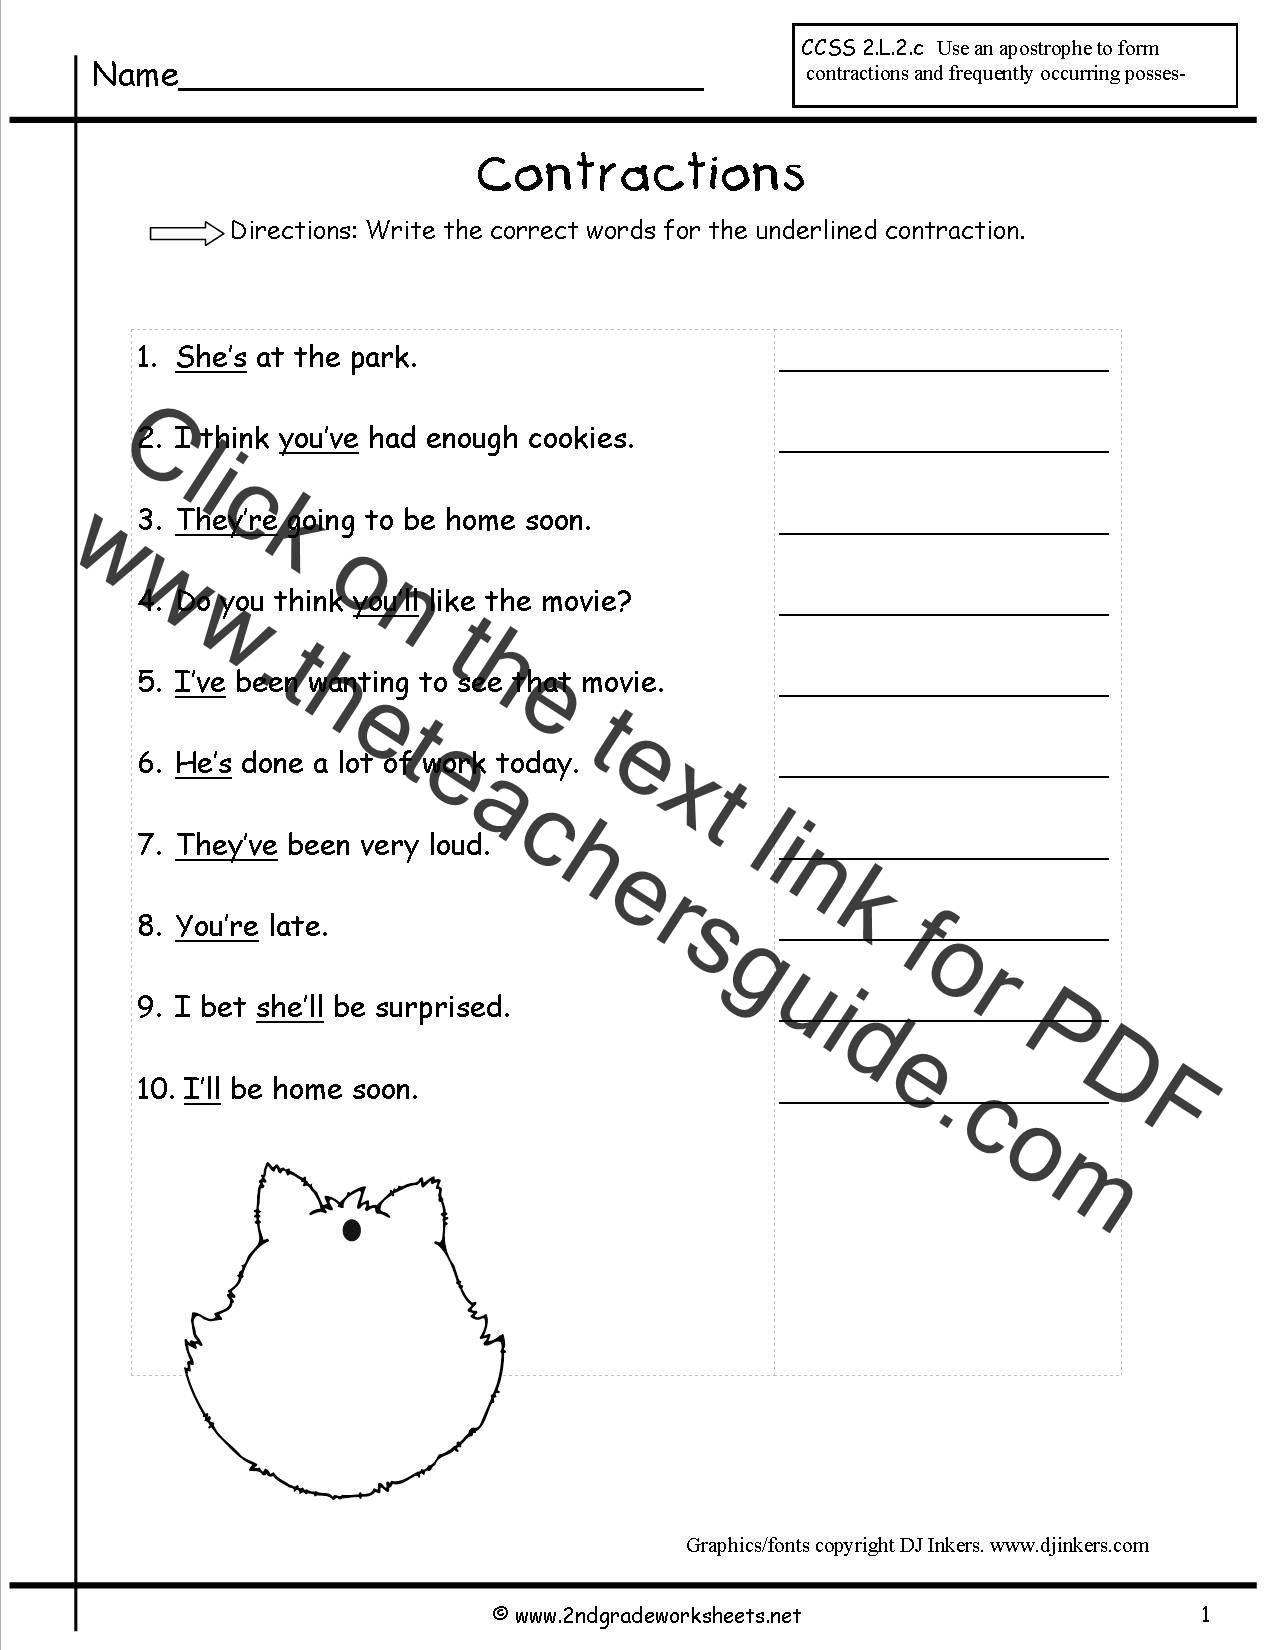 Free Contractions Worksheets and Printouts